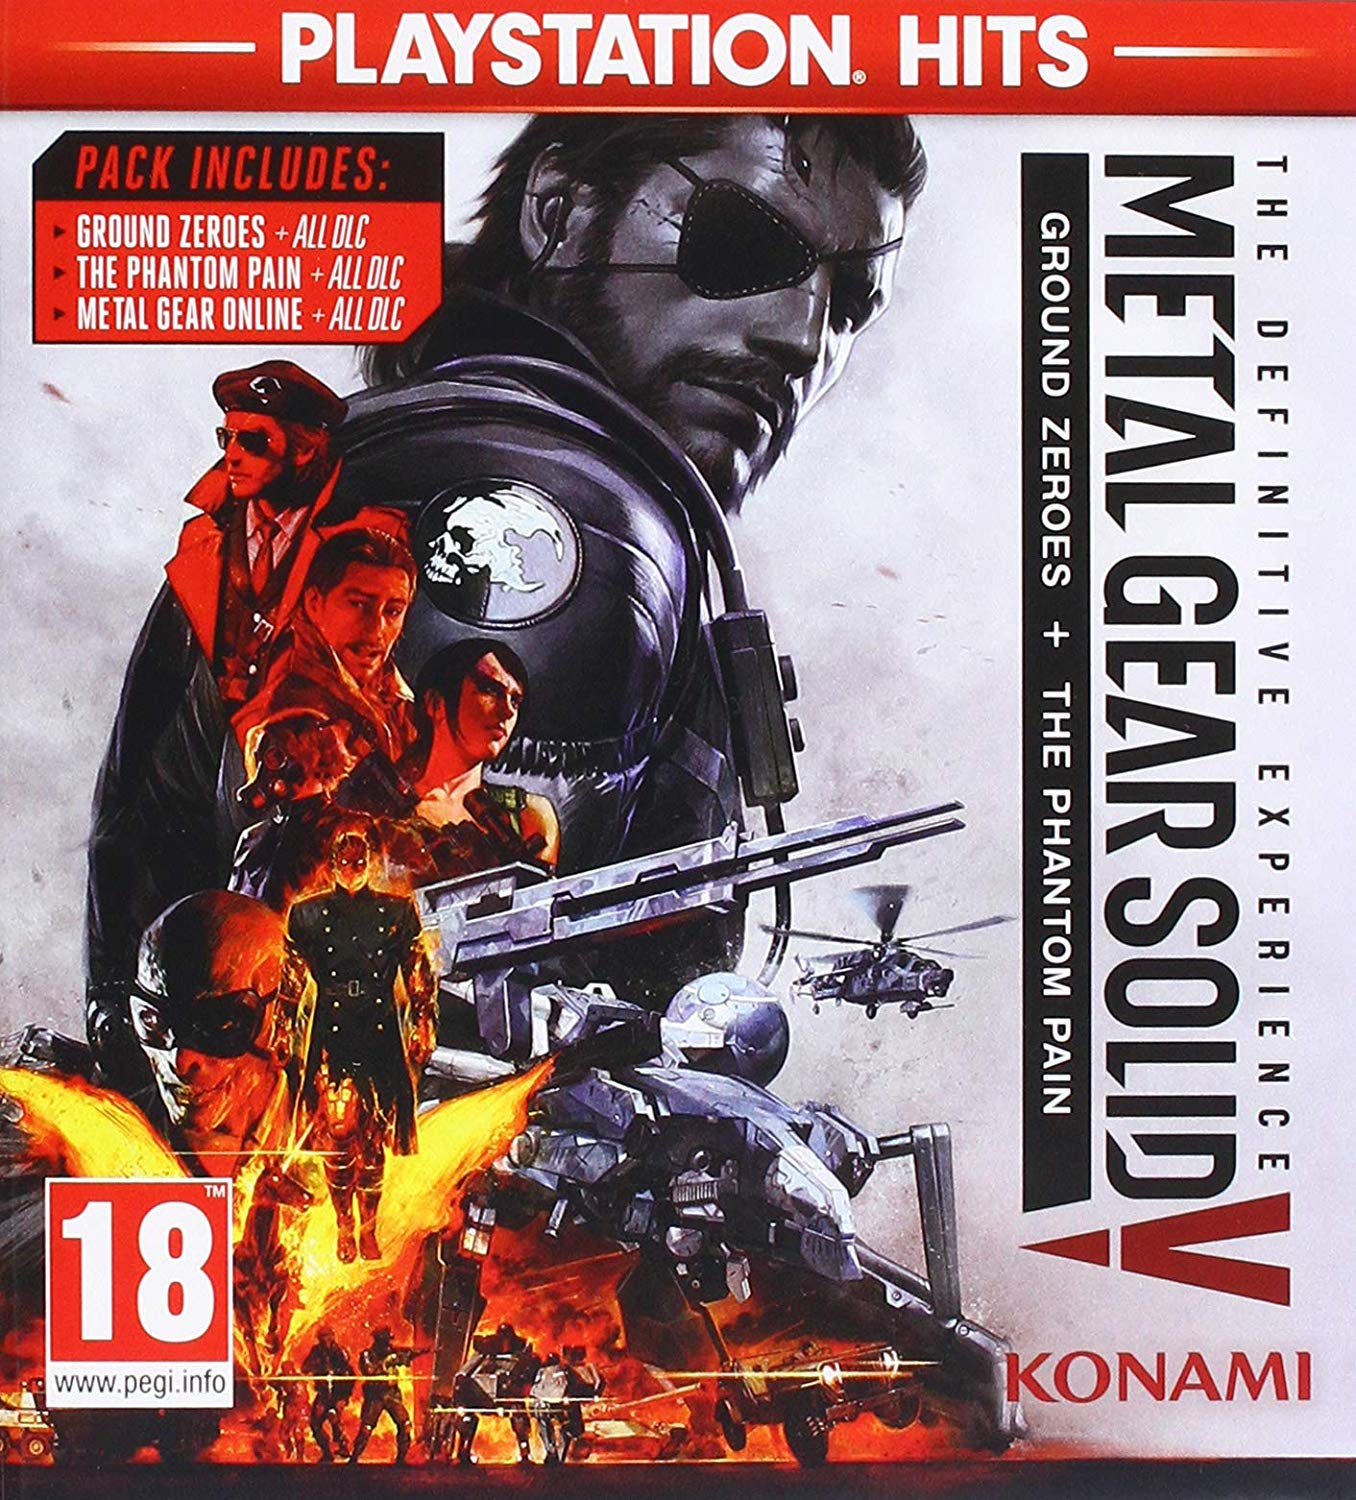 Metal Gear Solid V: The Definitive Experience PS4, PS4, DVDMEGASTORE, DVDMEGASTORE